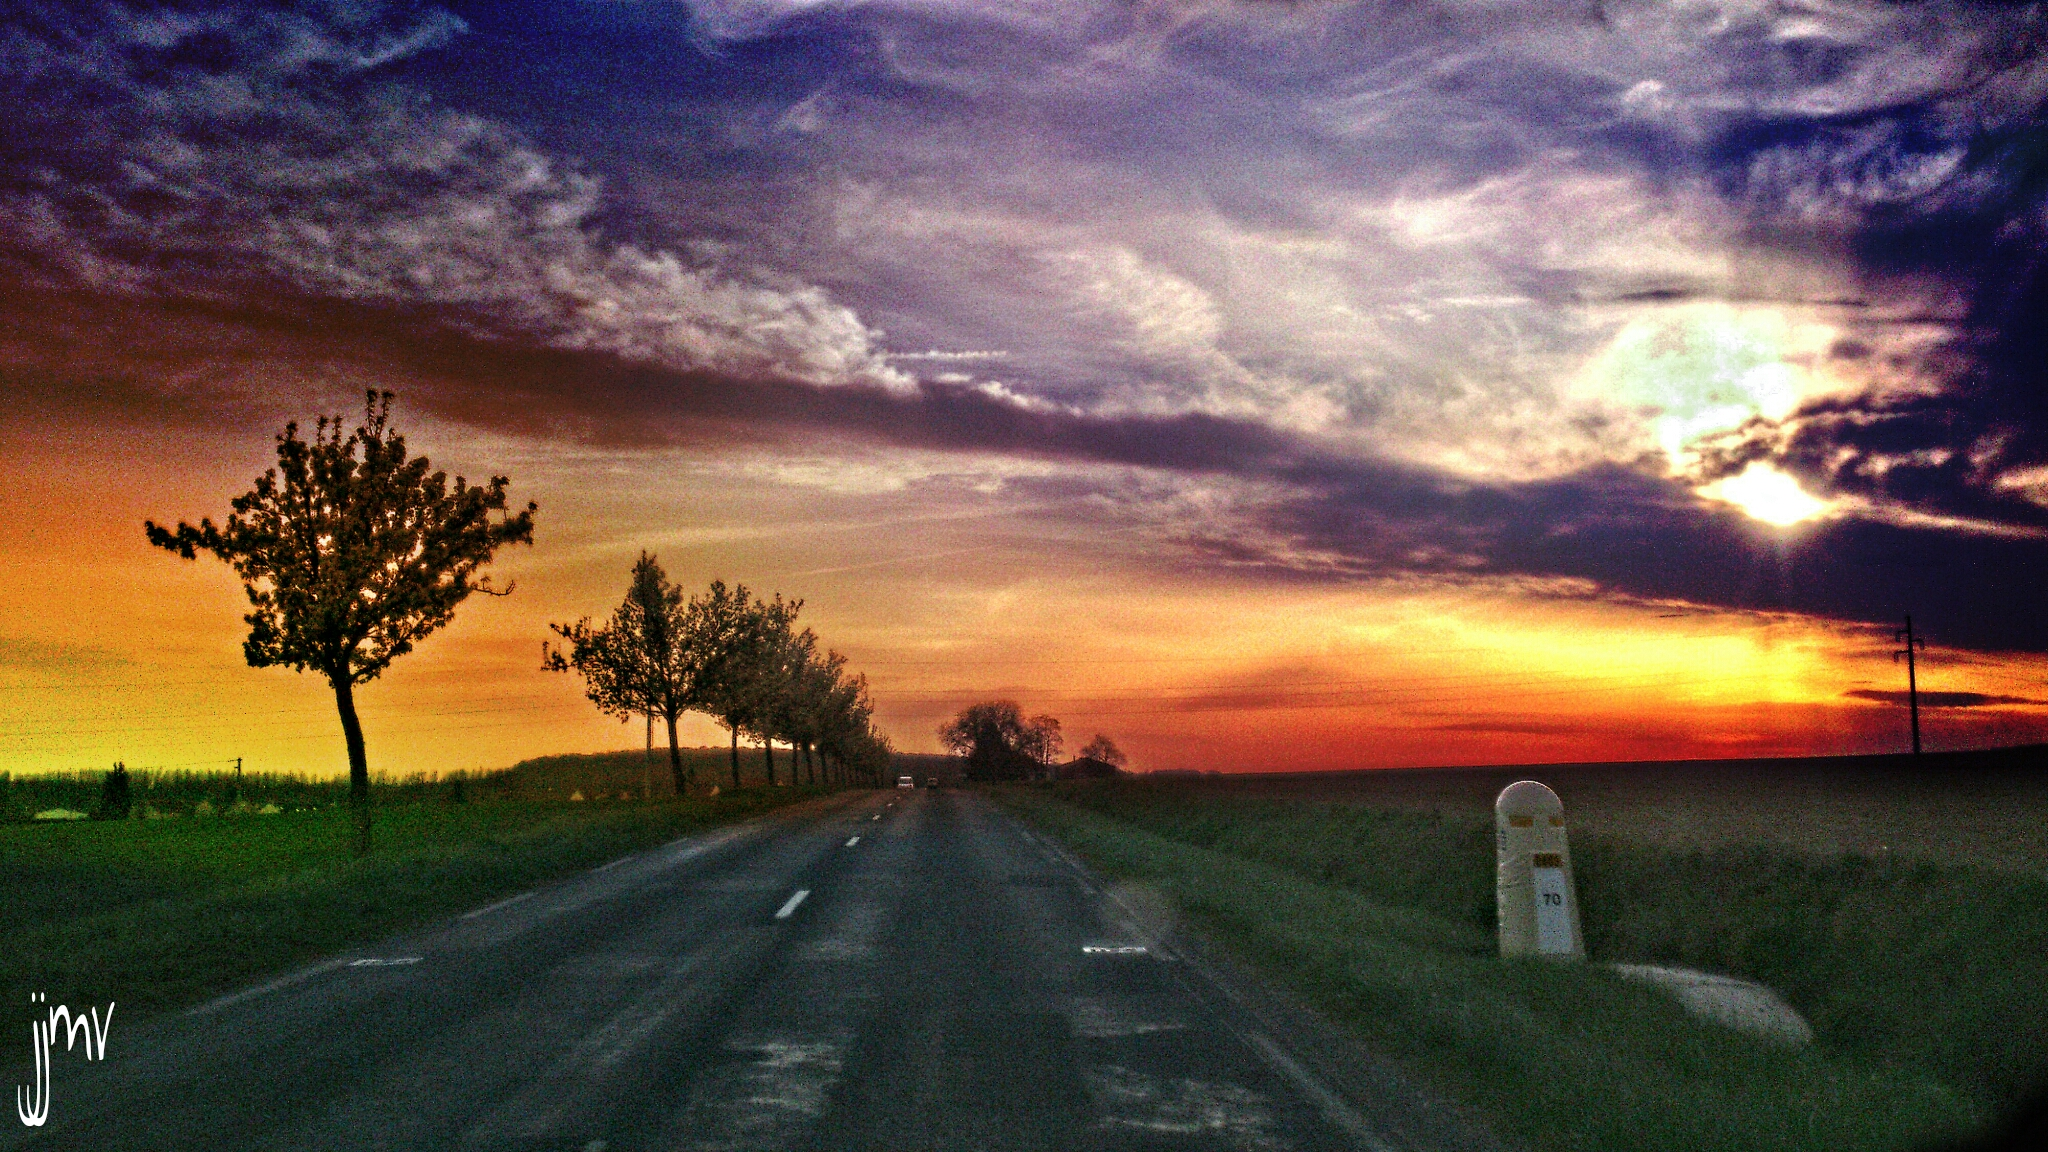 Photo of the road with tress and grass during sunset